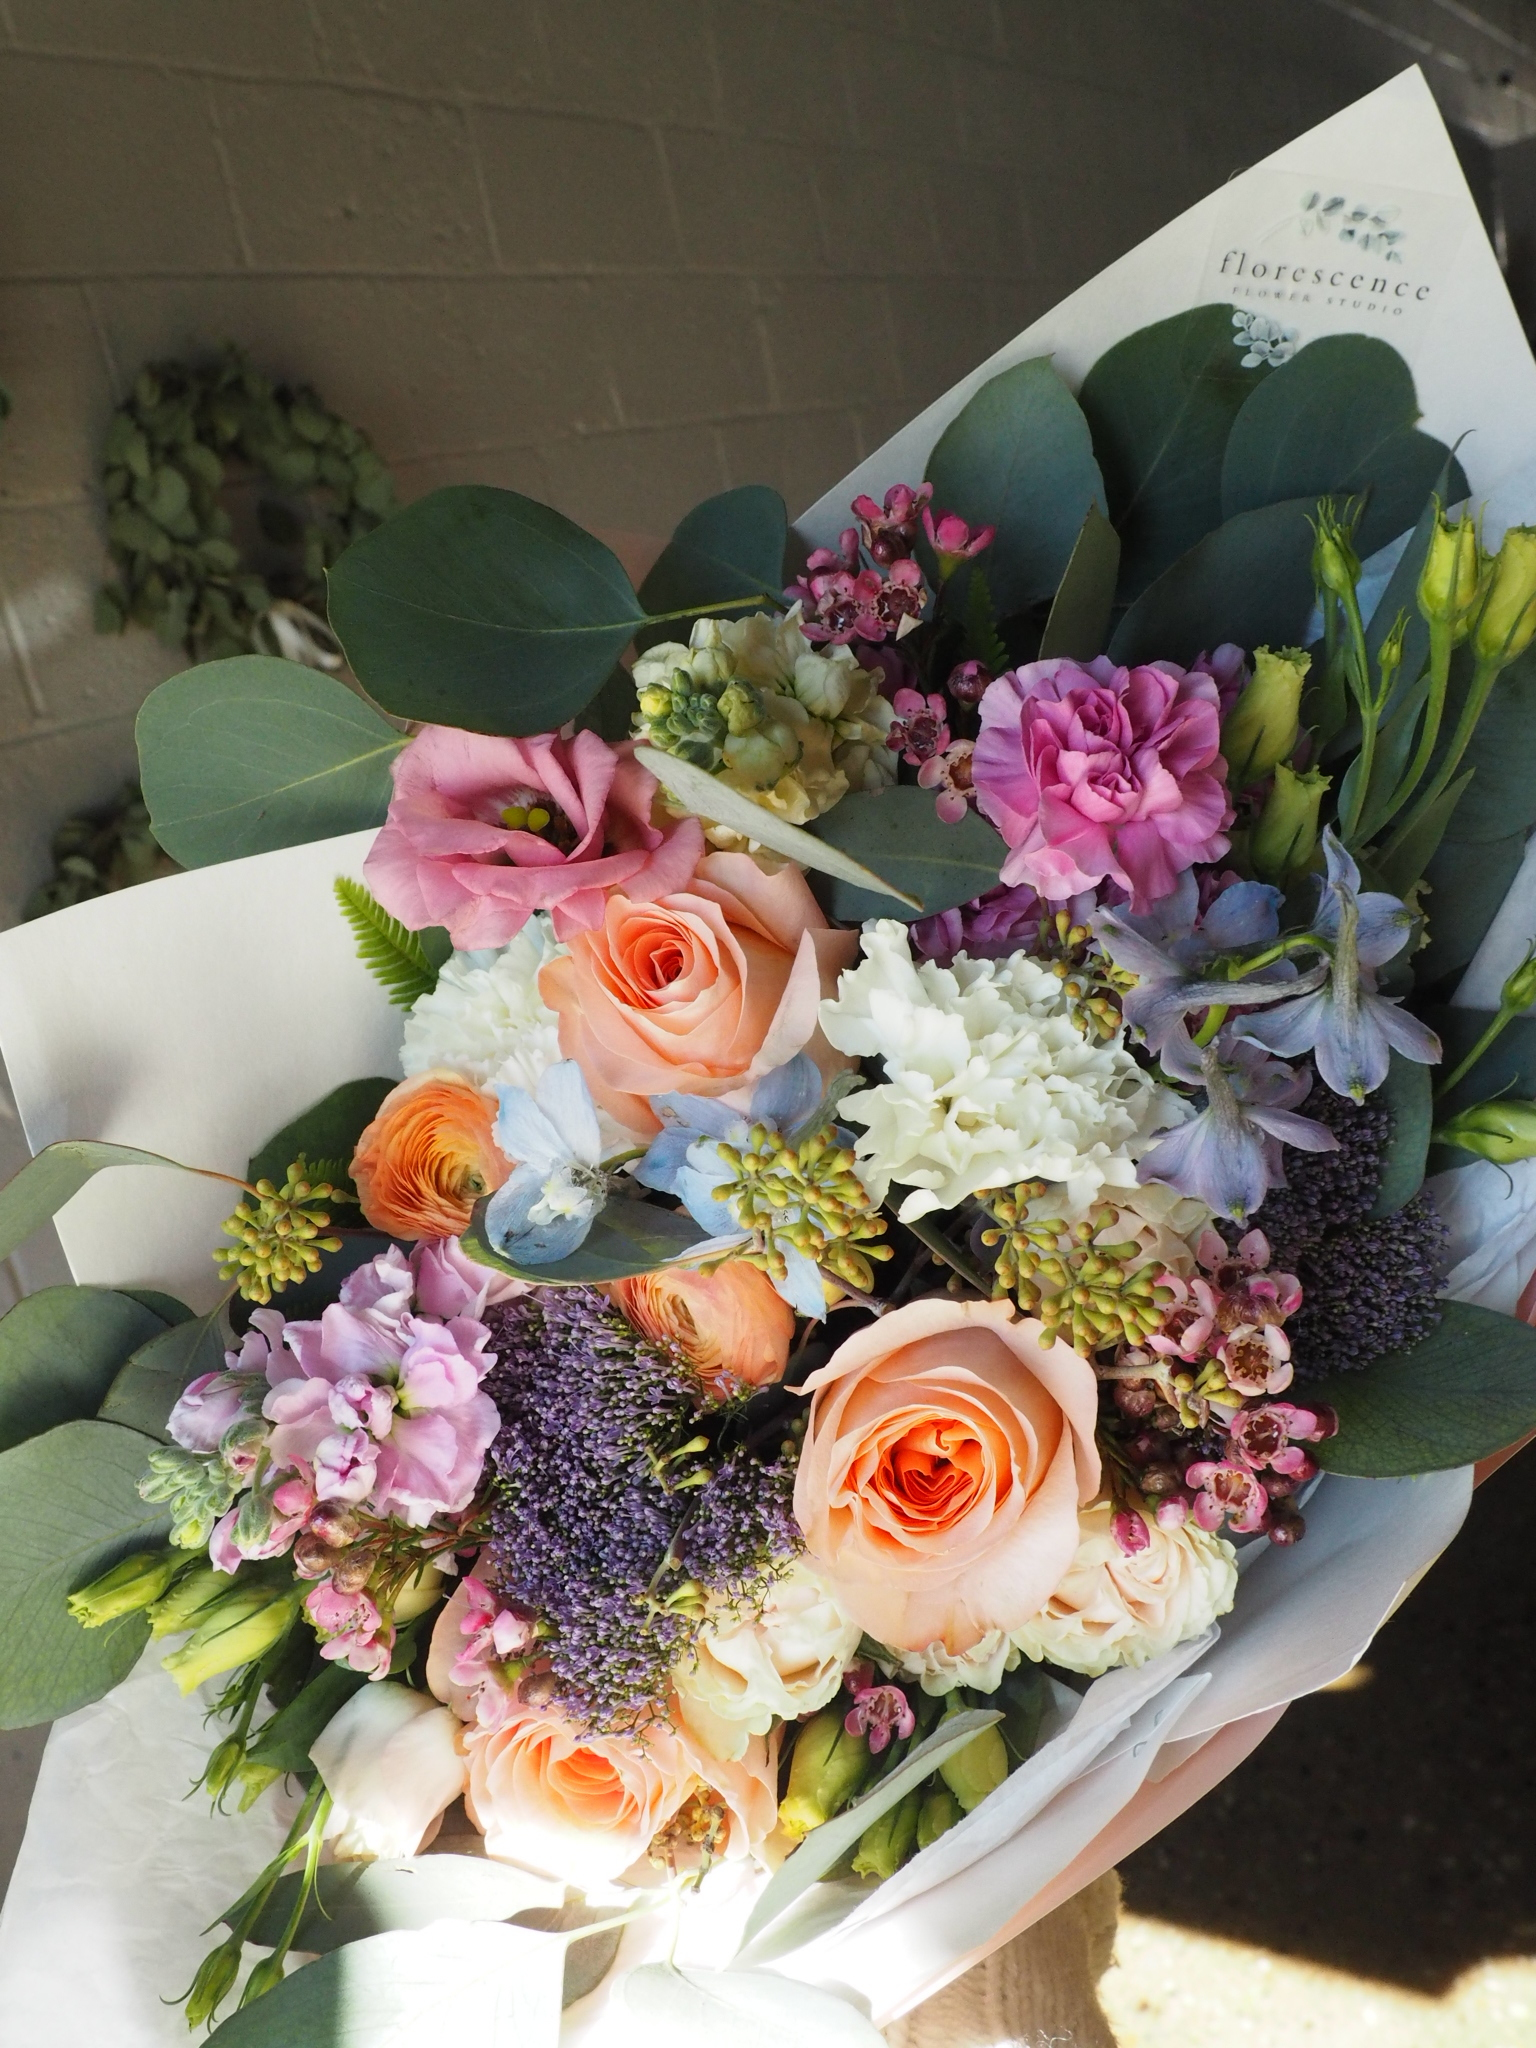 Florescence Vibrant Bouquet